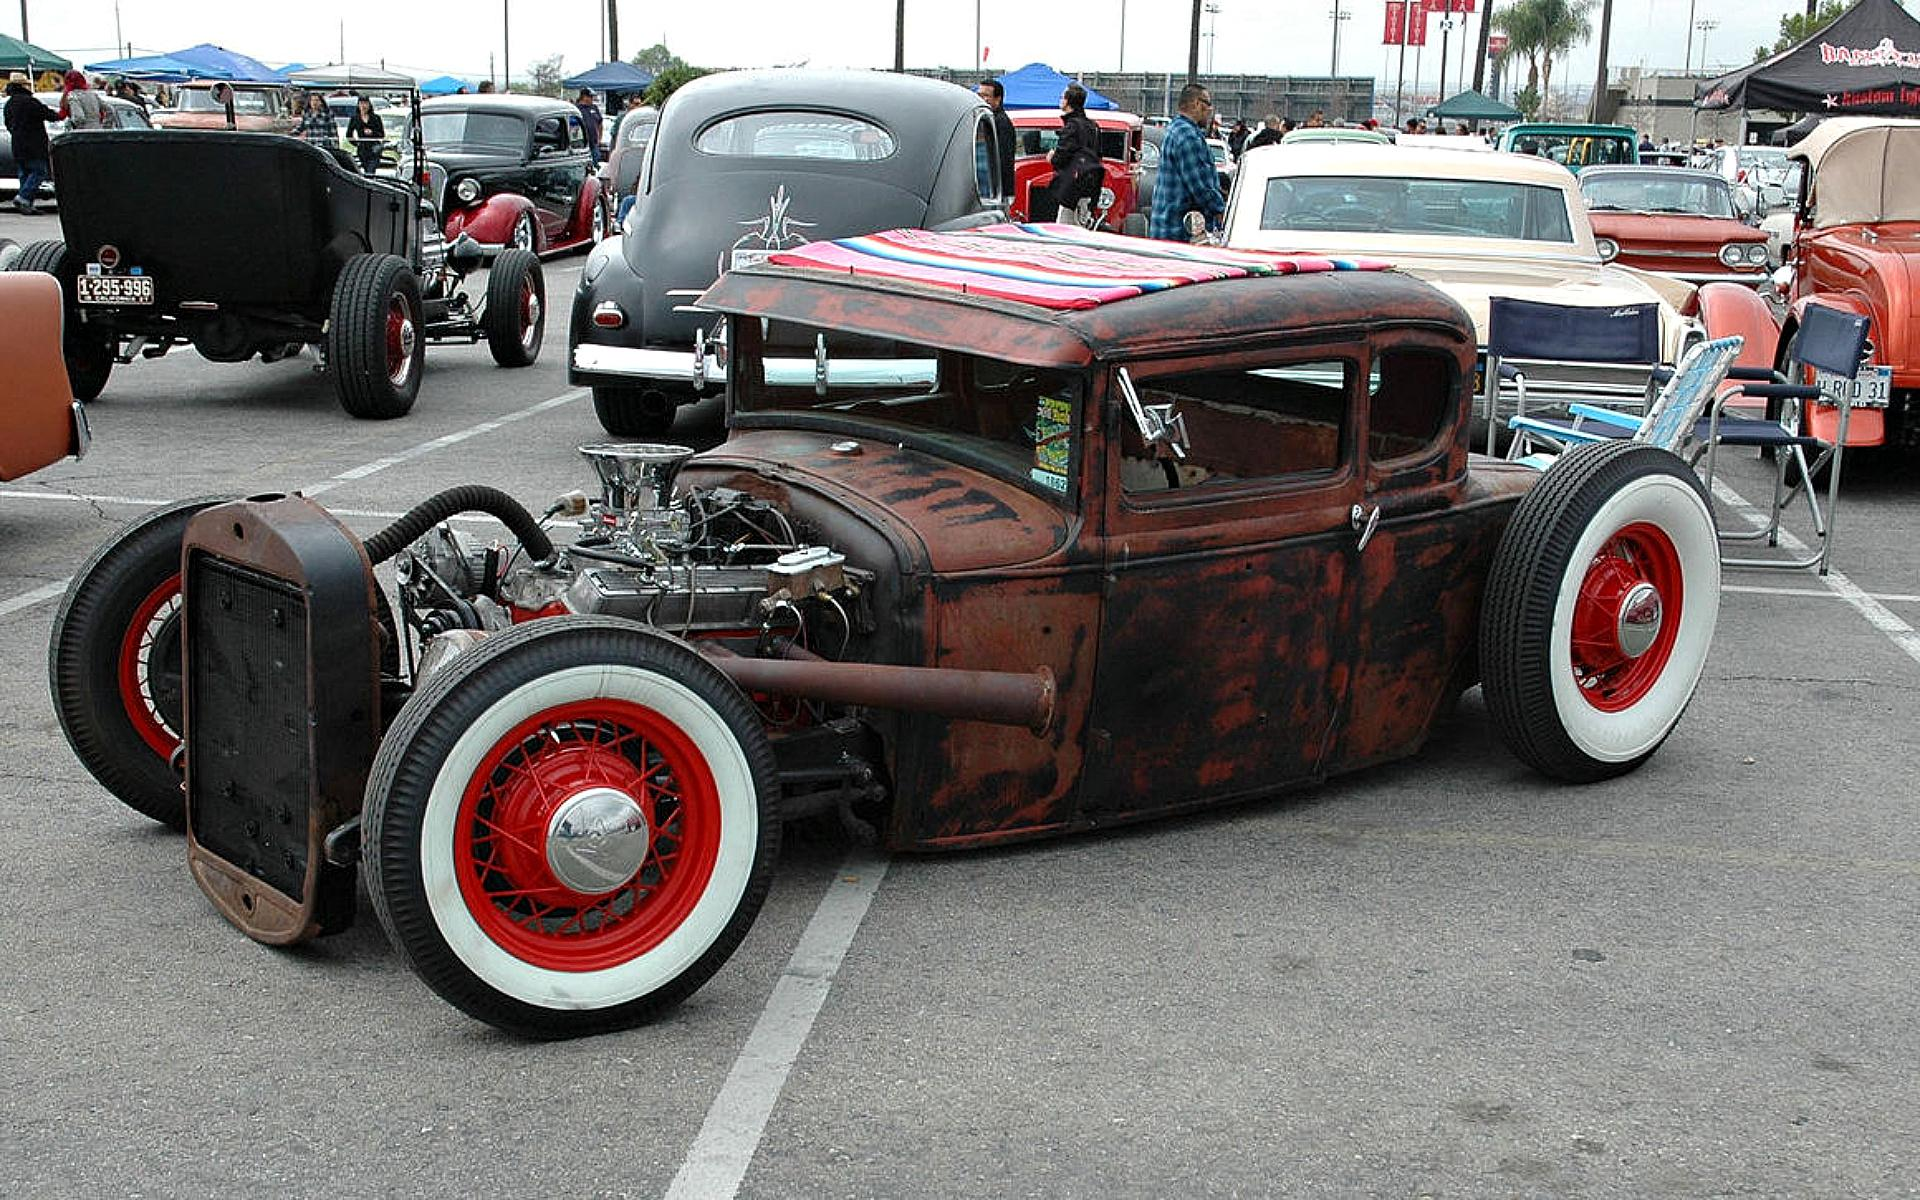 Rat rod   165845   High Quality and Resolution Wallpapers on 1920x1200